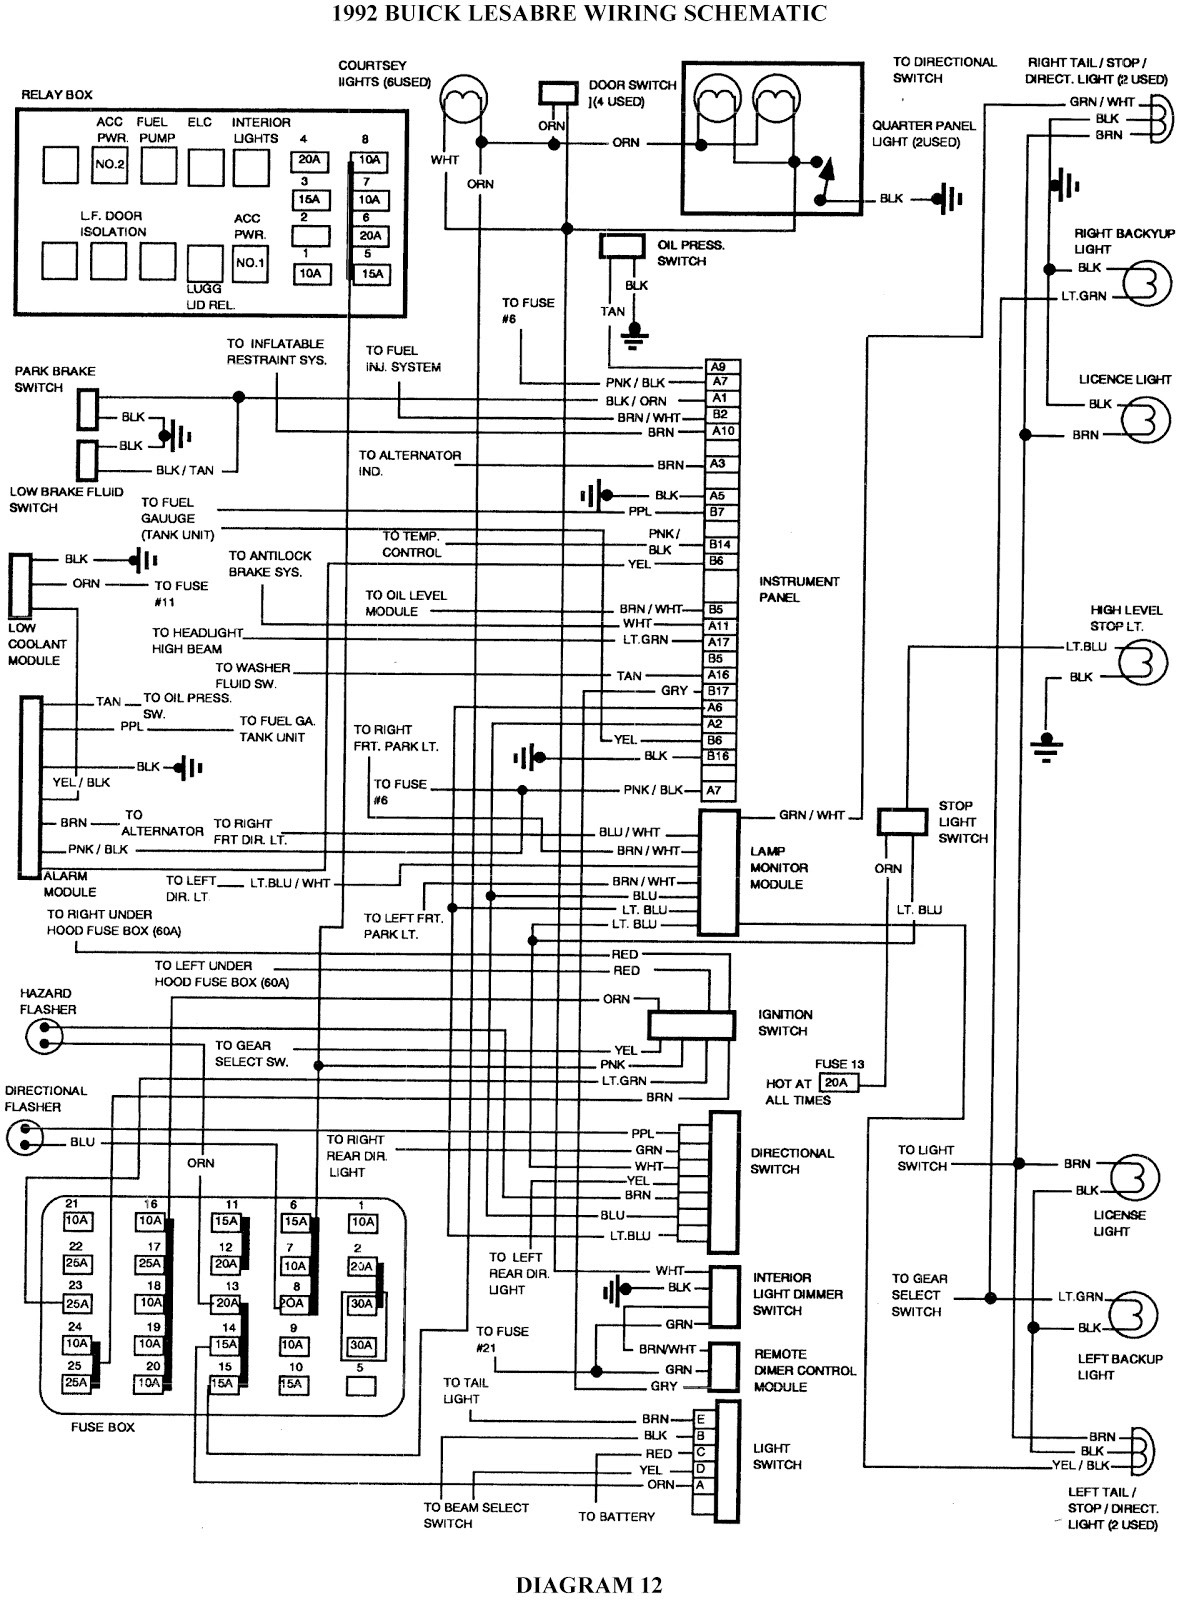 on 1995 buick lesabre engine wiring diagrams